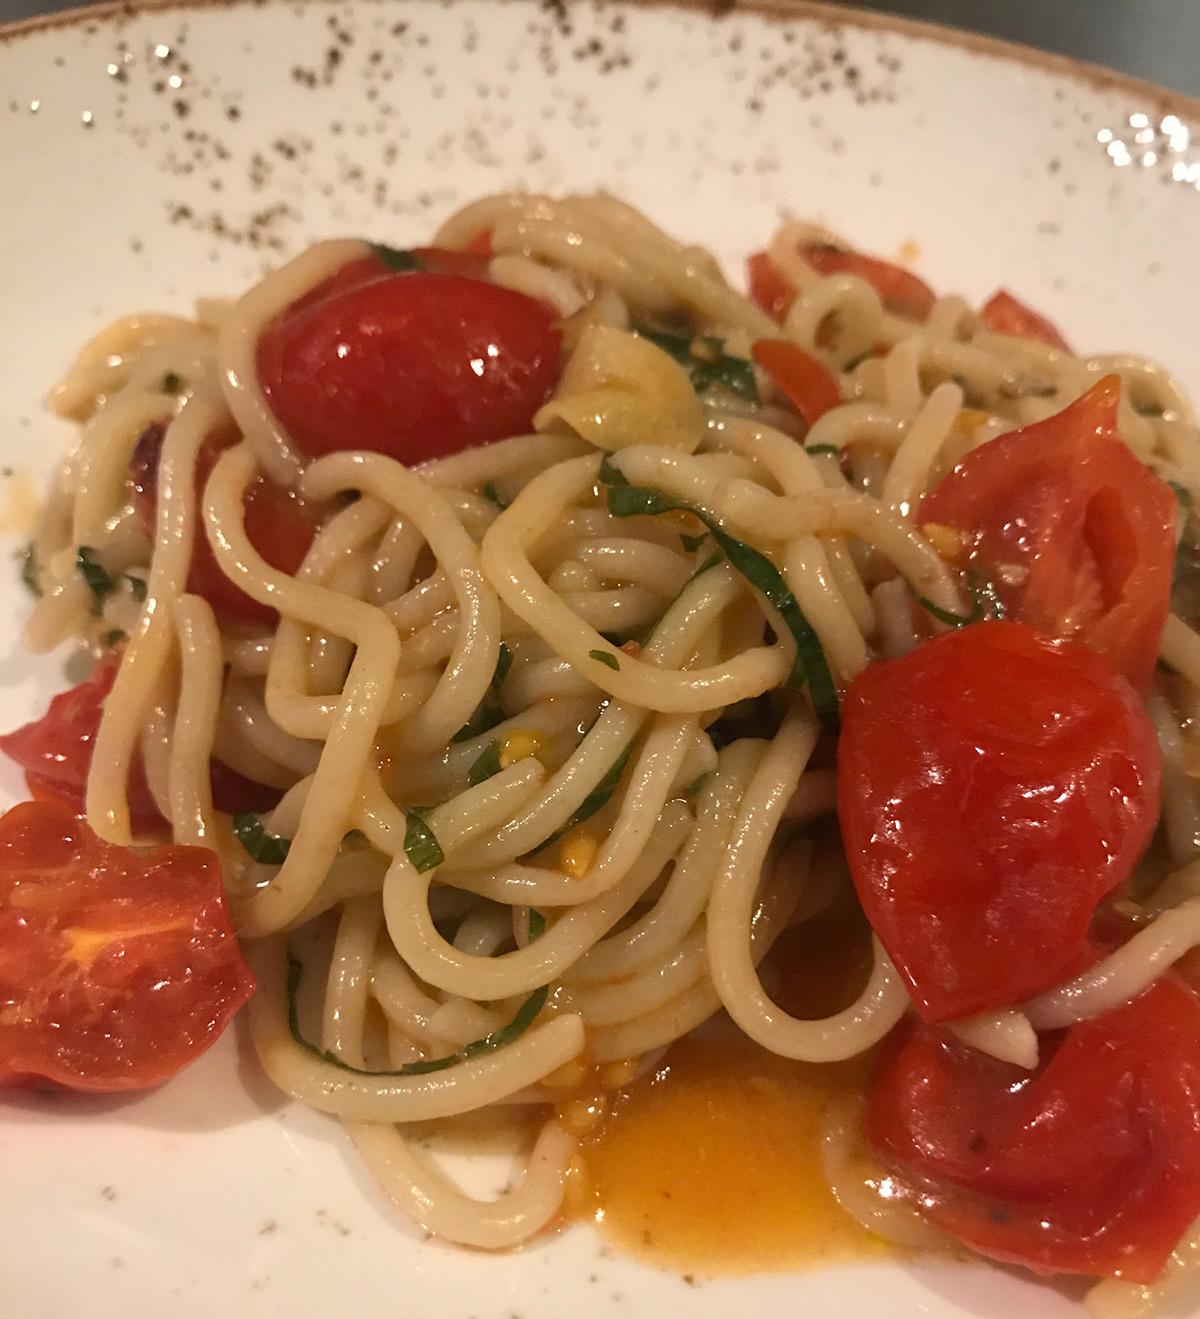 Chef Dante de Magistris is offering Piennolo tomatoes with <em>aglio e olio</em> at his three Boston-area restaurants this weekend